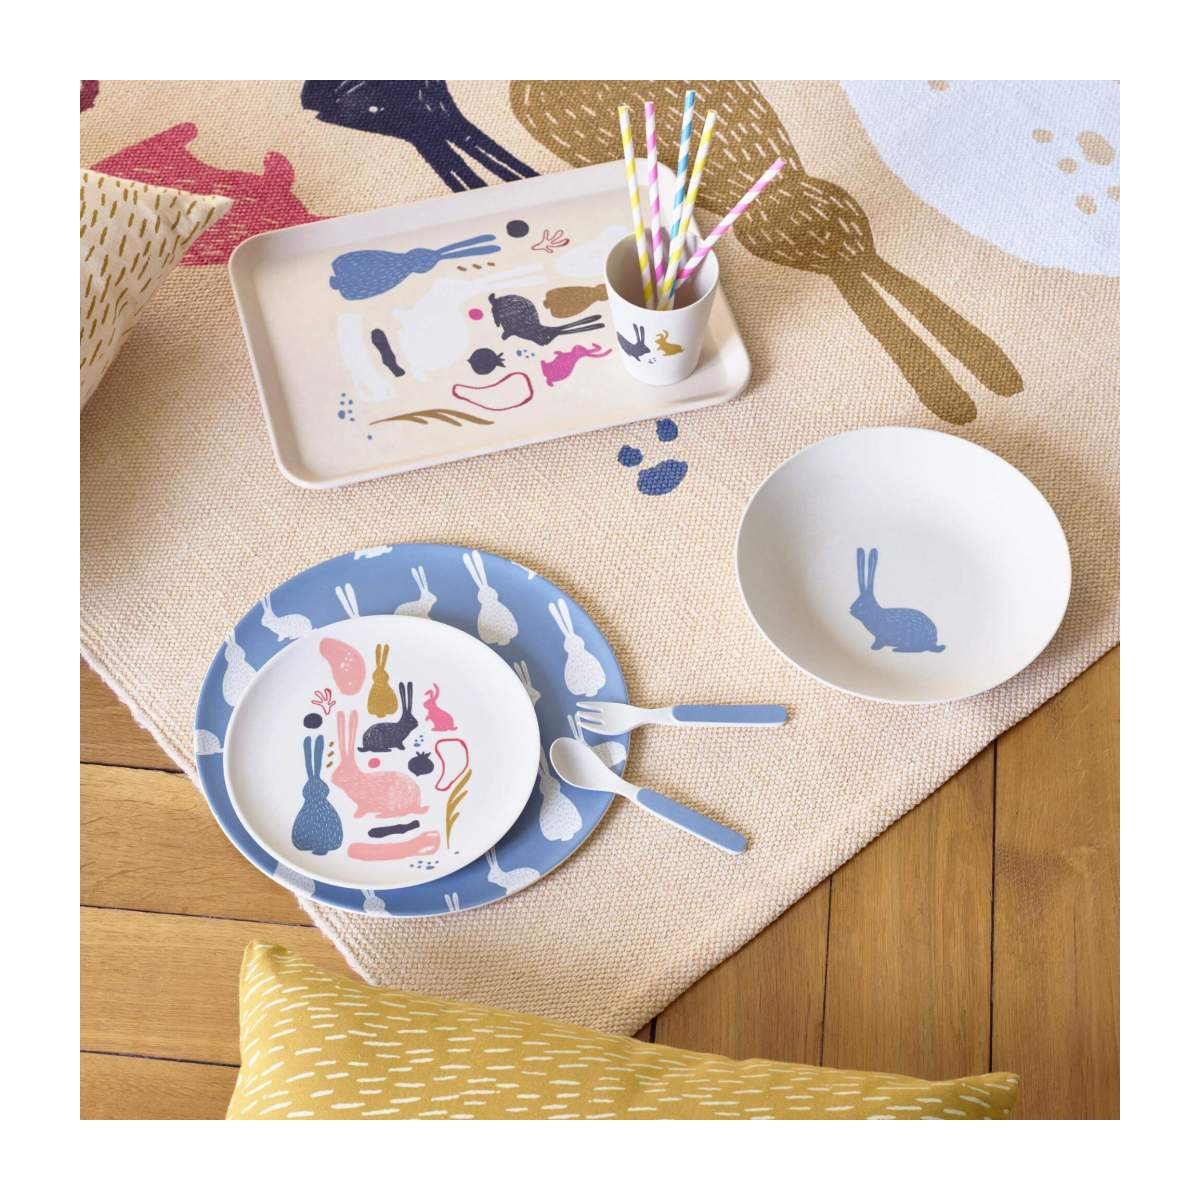 Fork and spoon for children n°5